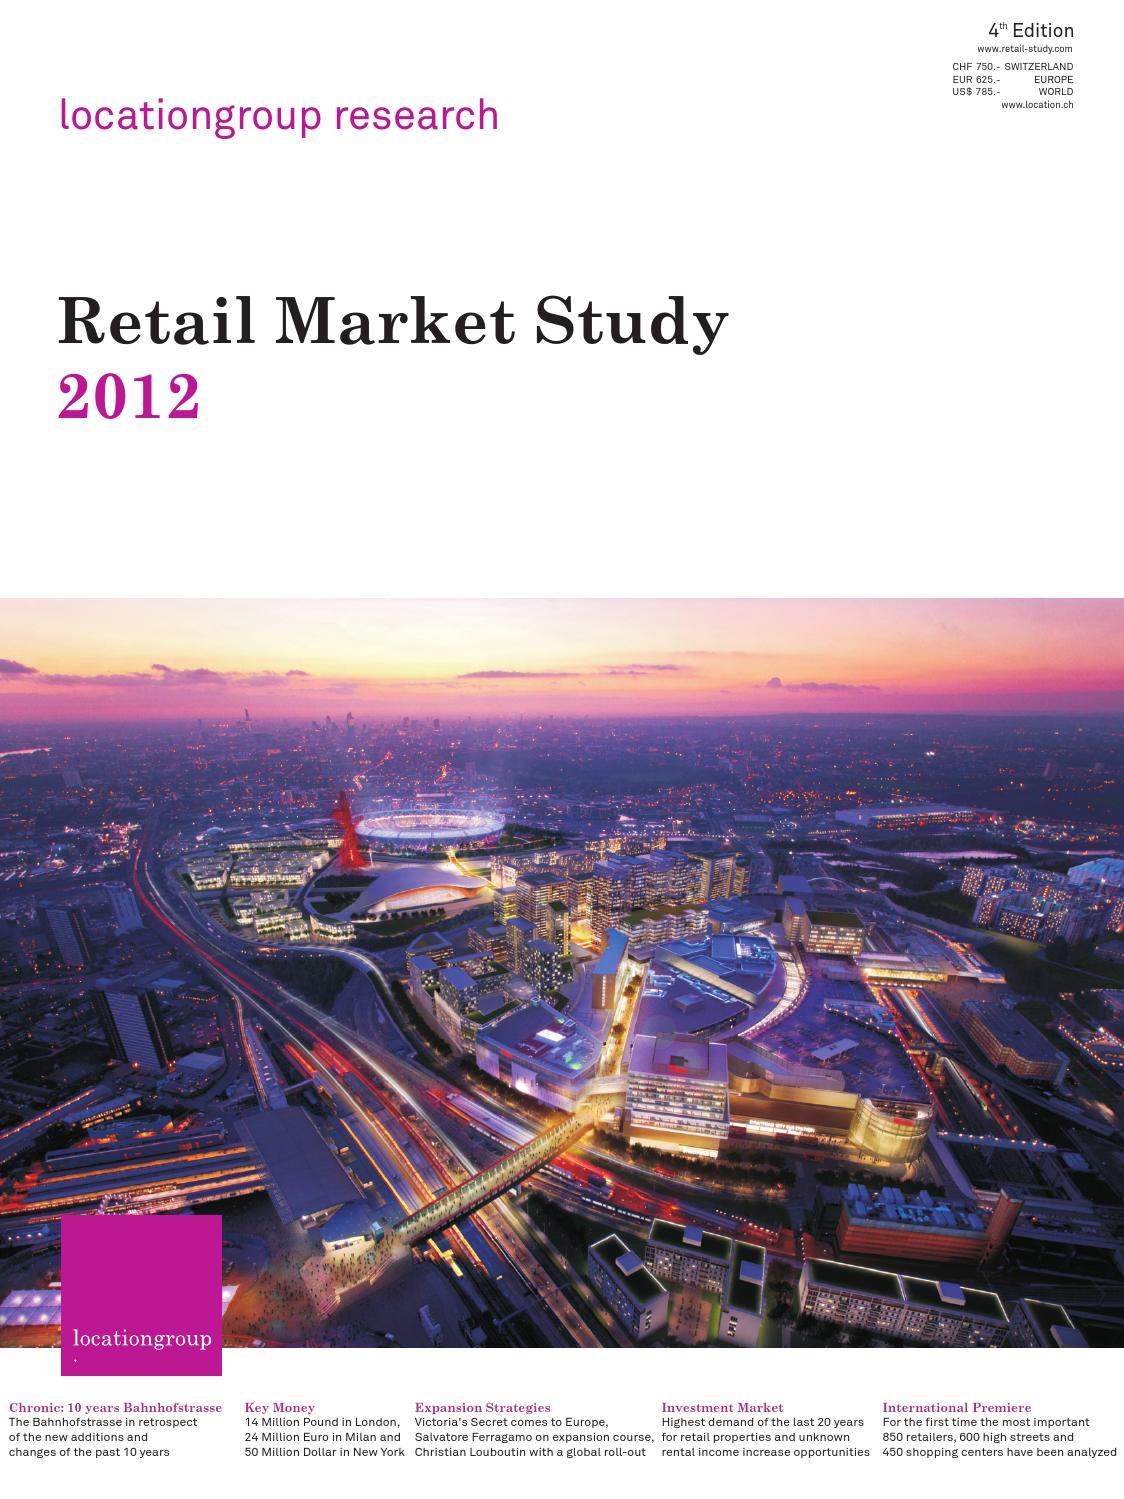 c59c905e0b95 Retail Market Study 2012 - Full Version by The Location Group - issuu